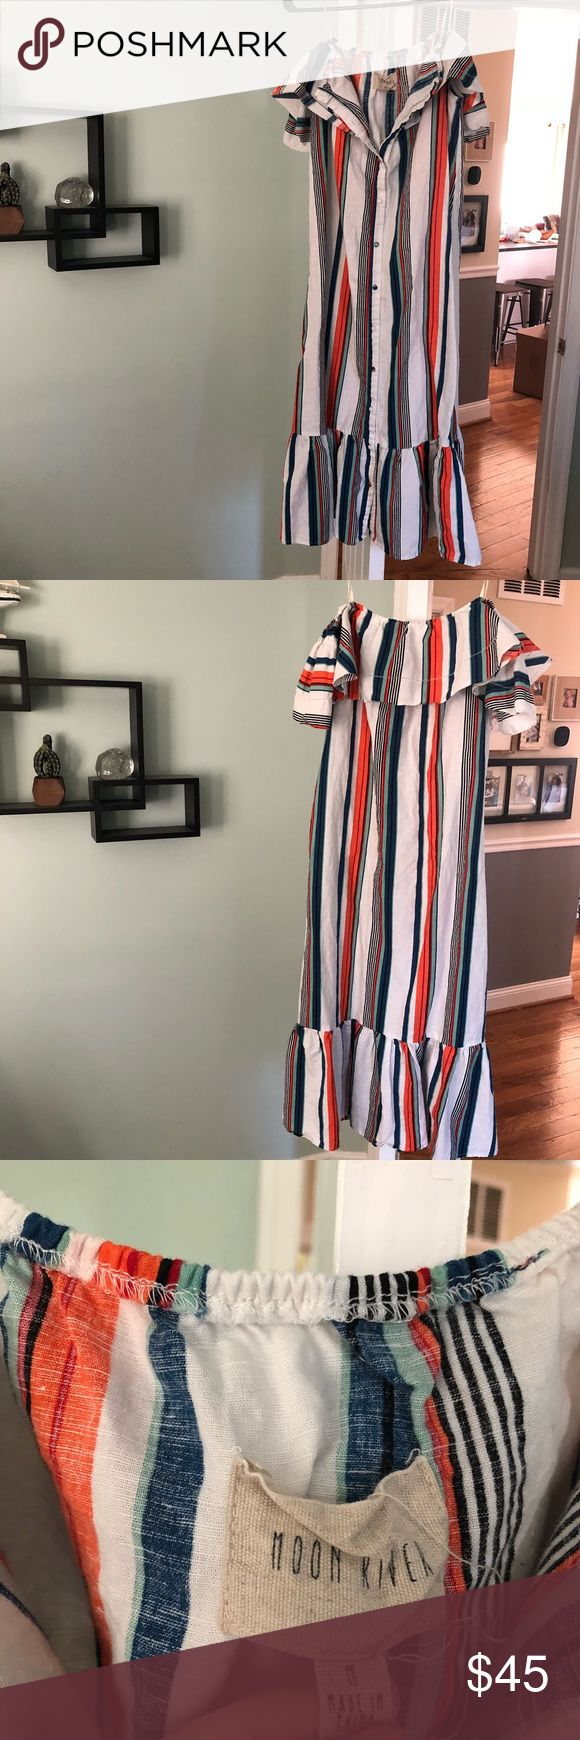 Moon River Lulu's Off The Shoulder Midi Dress NWOT Moon River Off The Shoulder Button Down Striped Dress Sz Medium, no flaws, non smoking home. Never been worn. Vertical striped dress, Button Down, off the shoulder, Ruffle bottom Hem, 55% Linen 40%. Offers considered.  *cant find the waist string/tie but you can replace with a belt Lulu's Dresses Midi